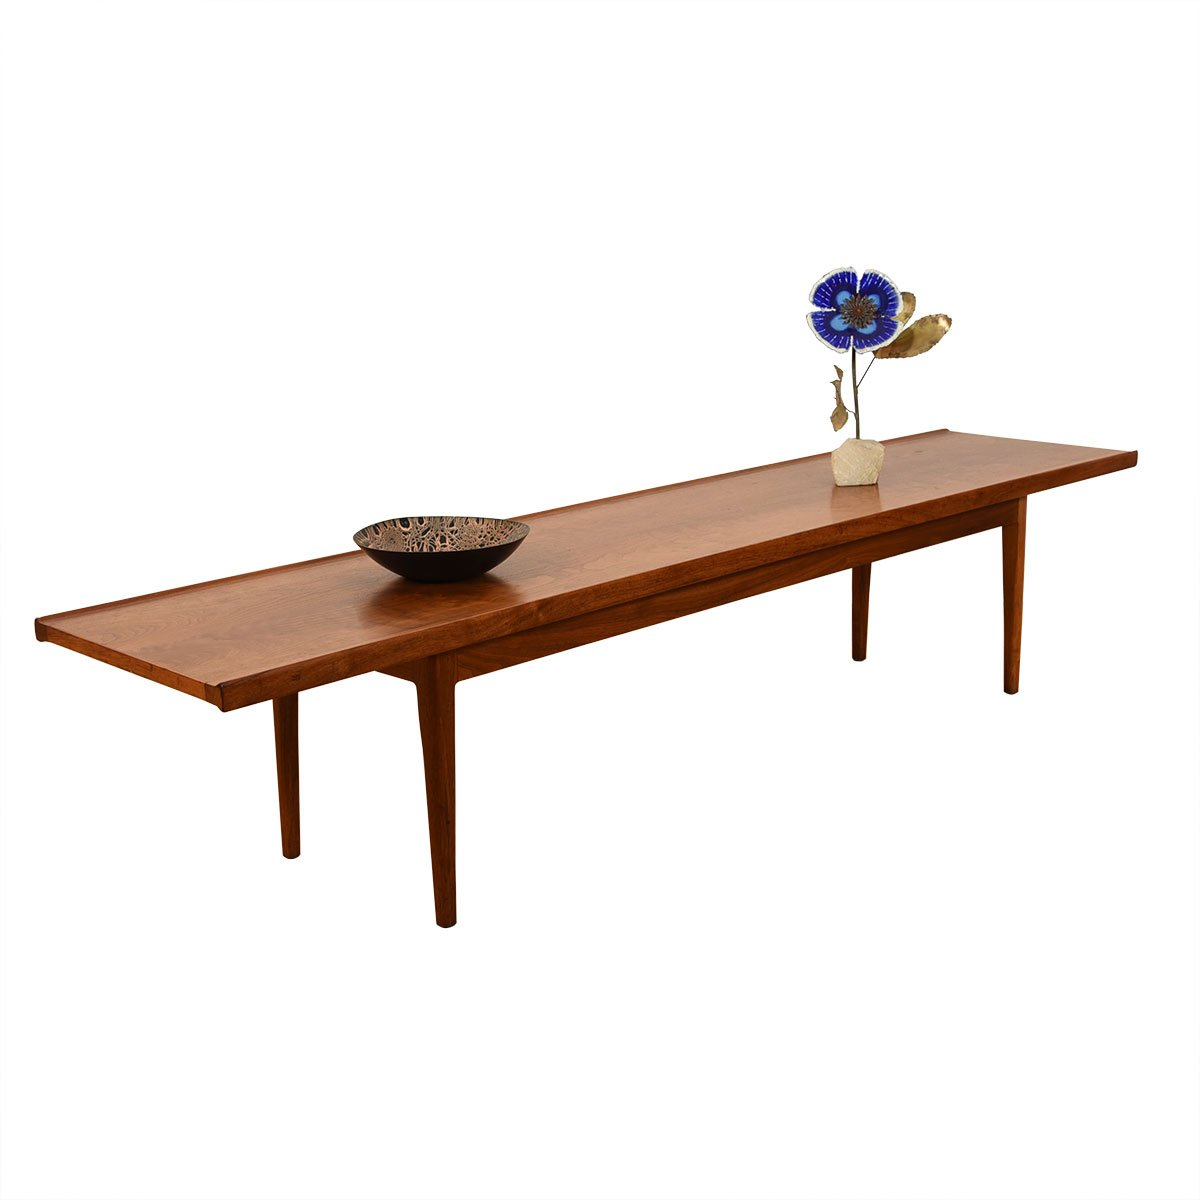 Thin & Long Mid Century Walnut Raised Edge Coffee Table